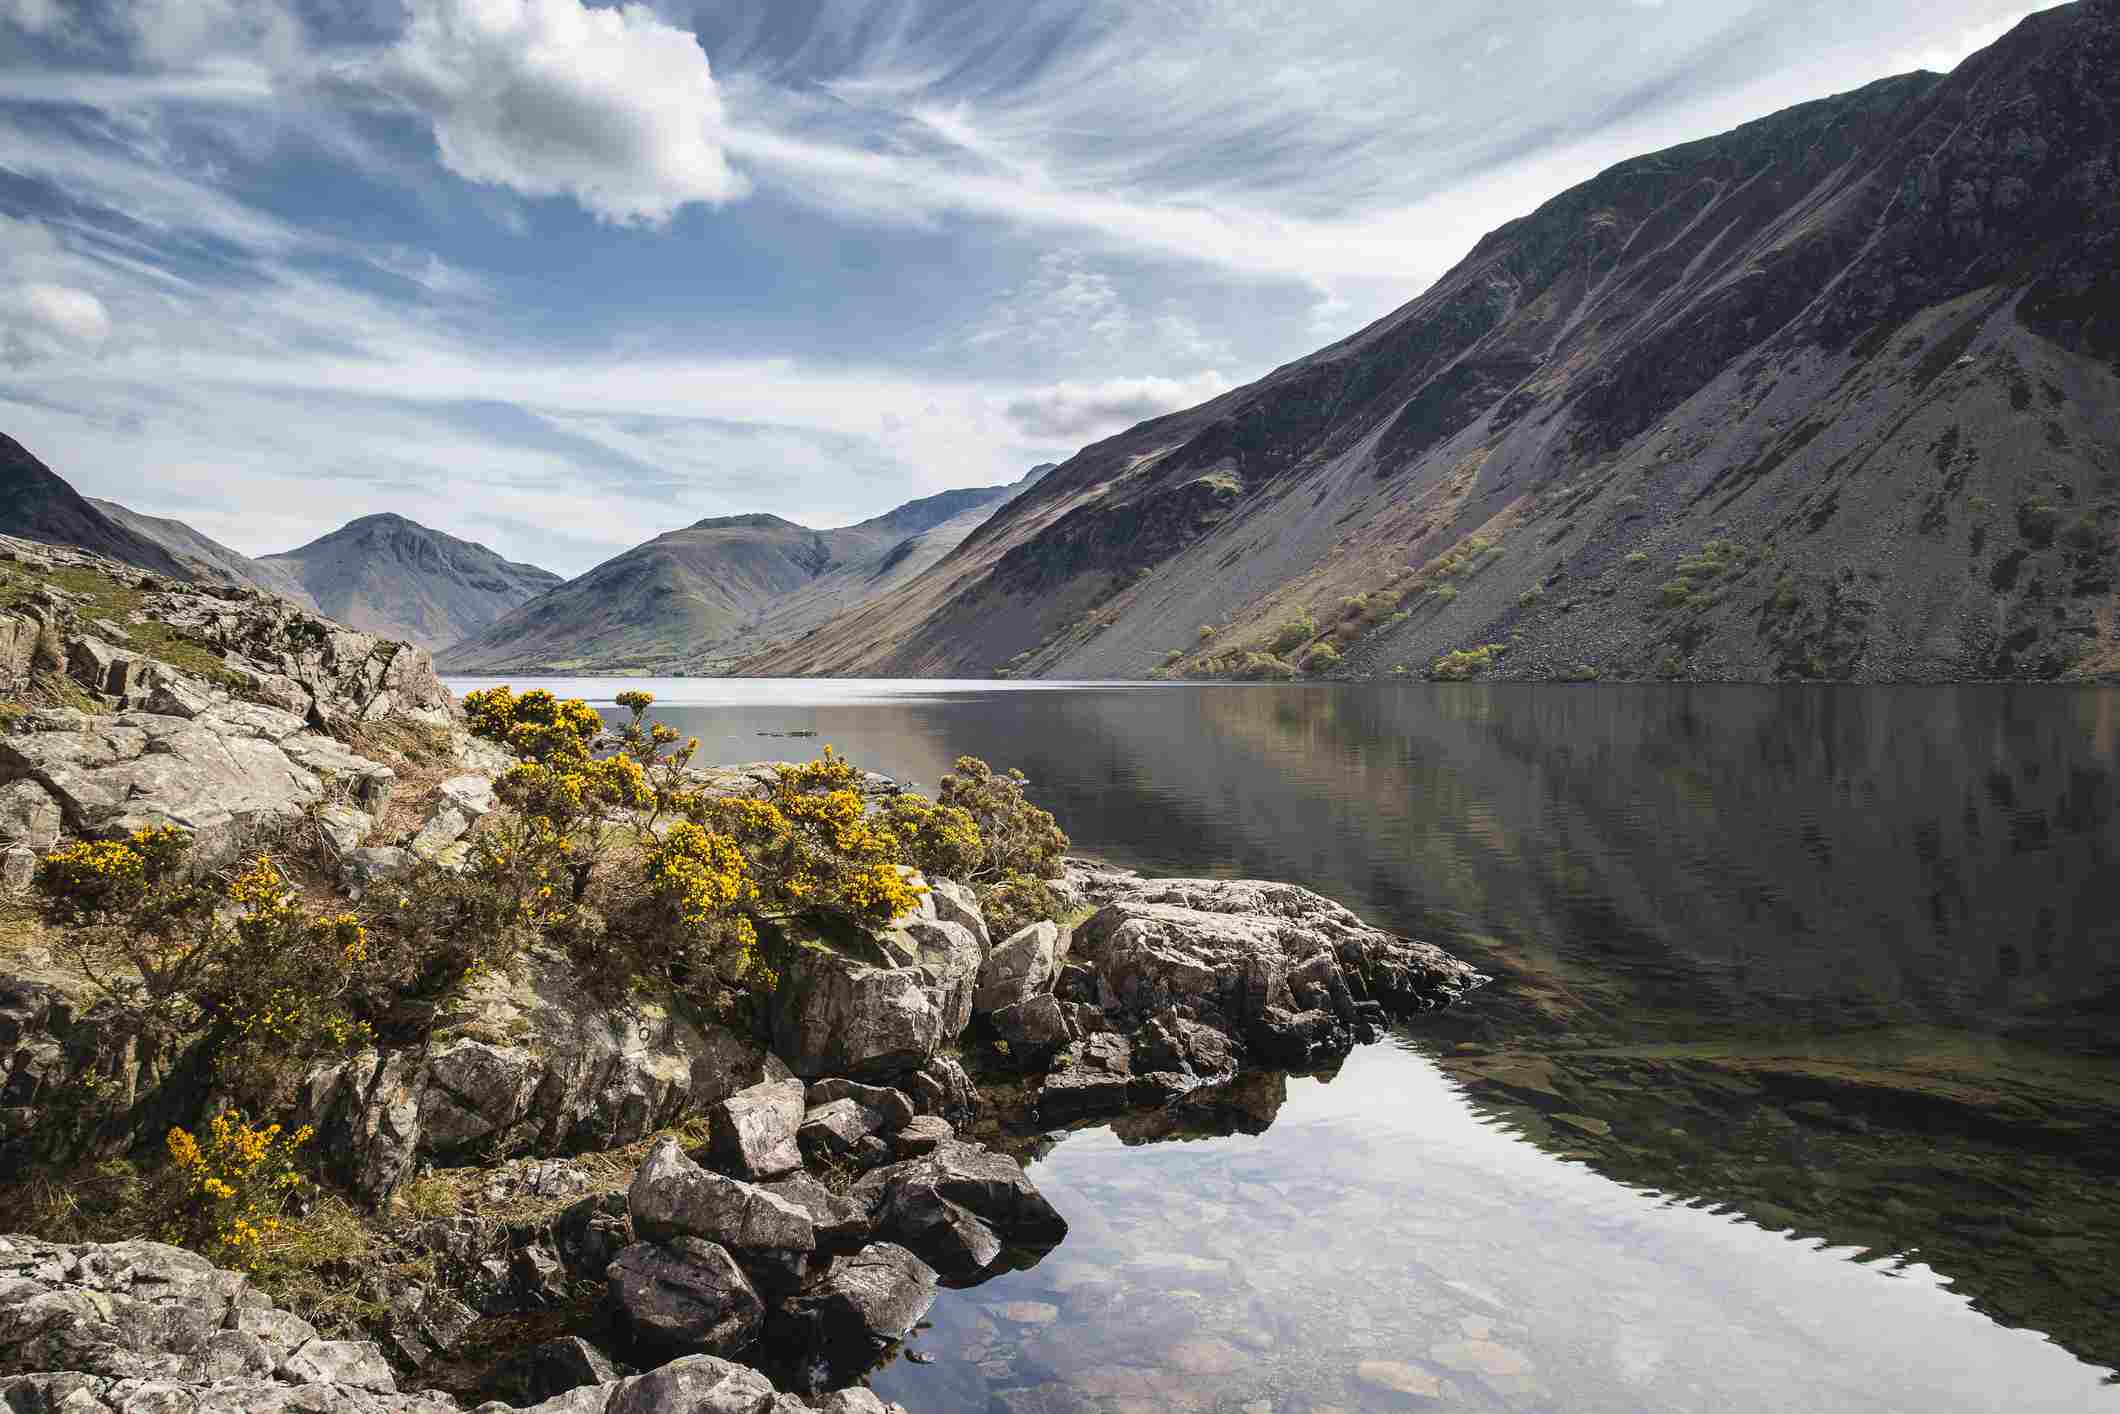 Lake District mountains landscape reflected in still lake of Wast Water